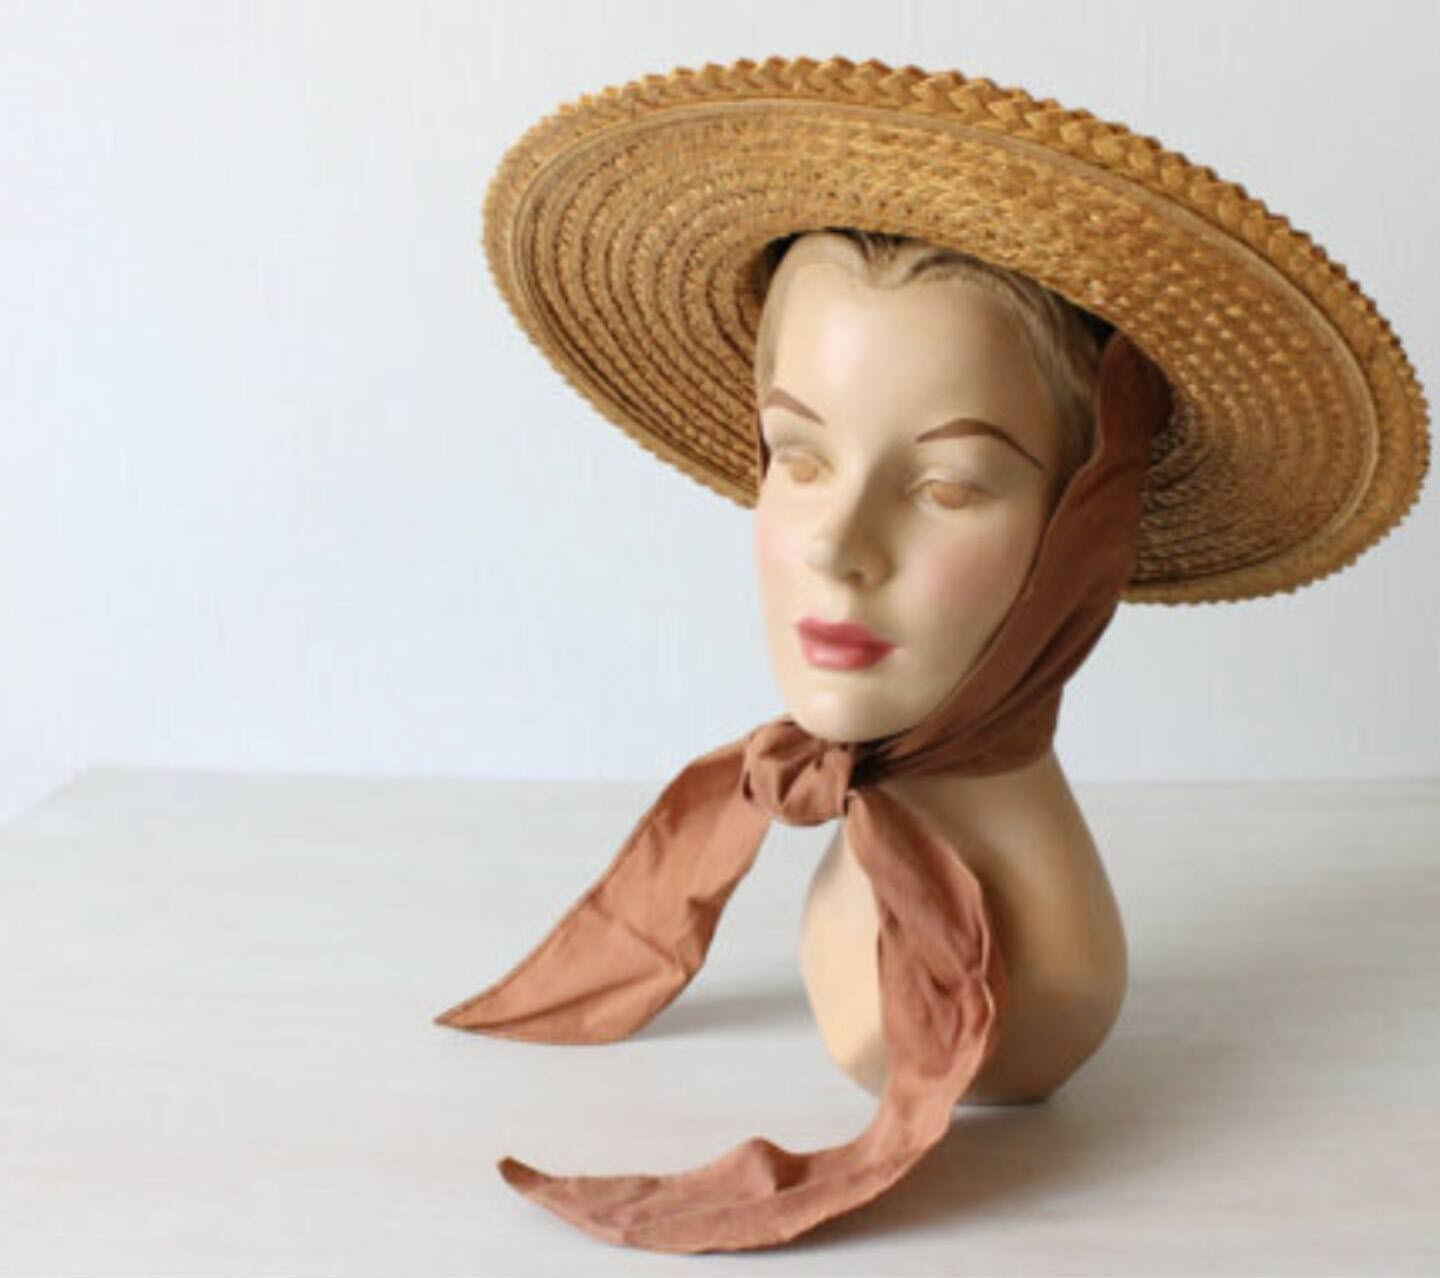 d58d16016b22c Wide brimmed straw hats that tie under the chin